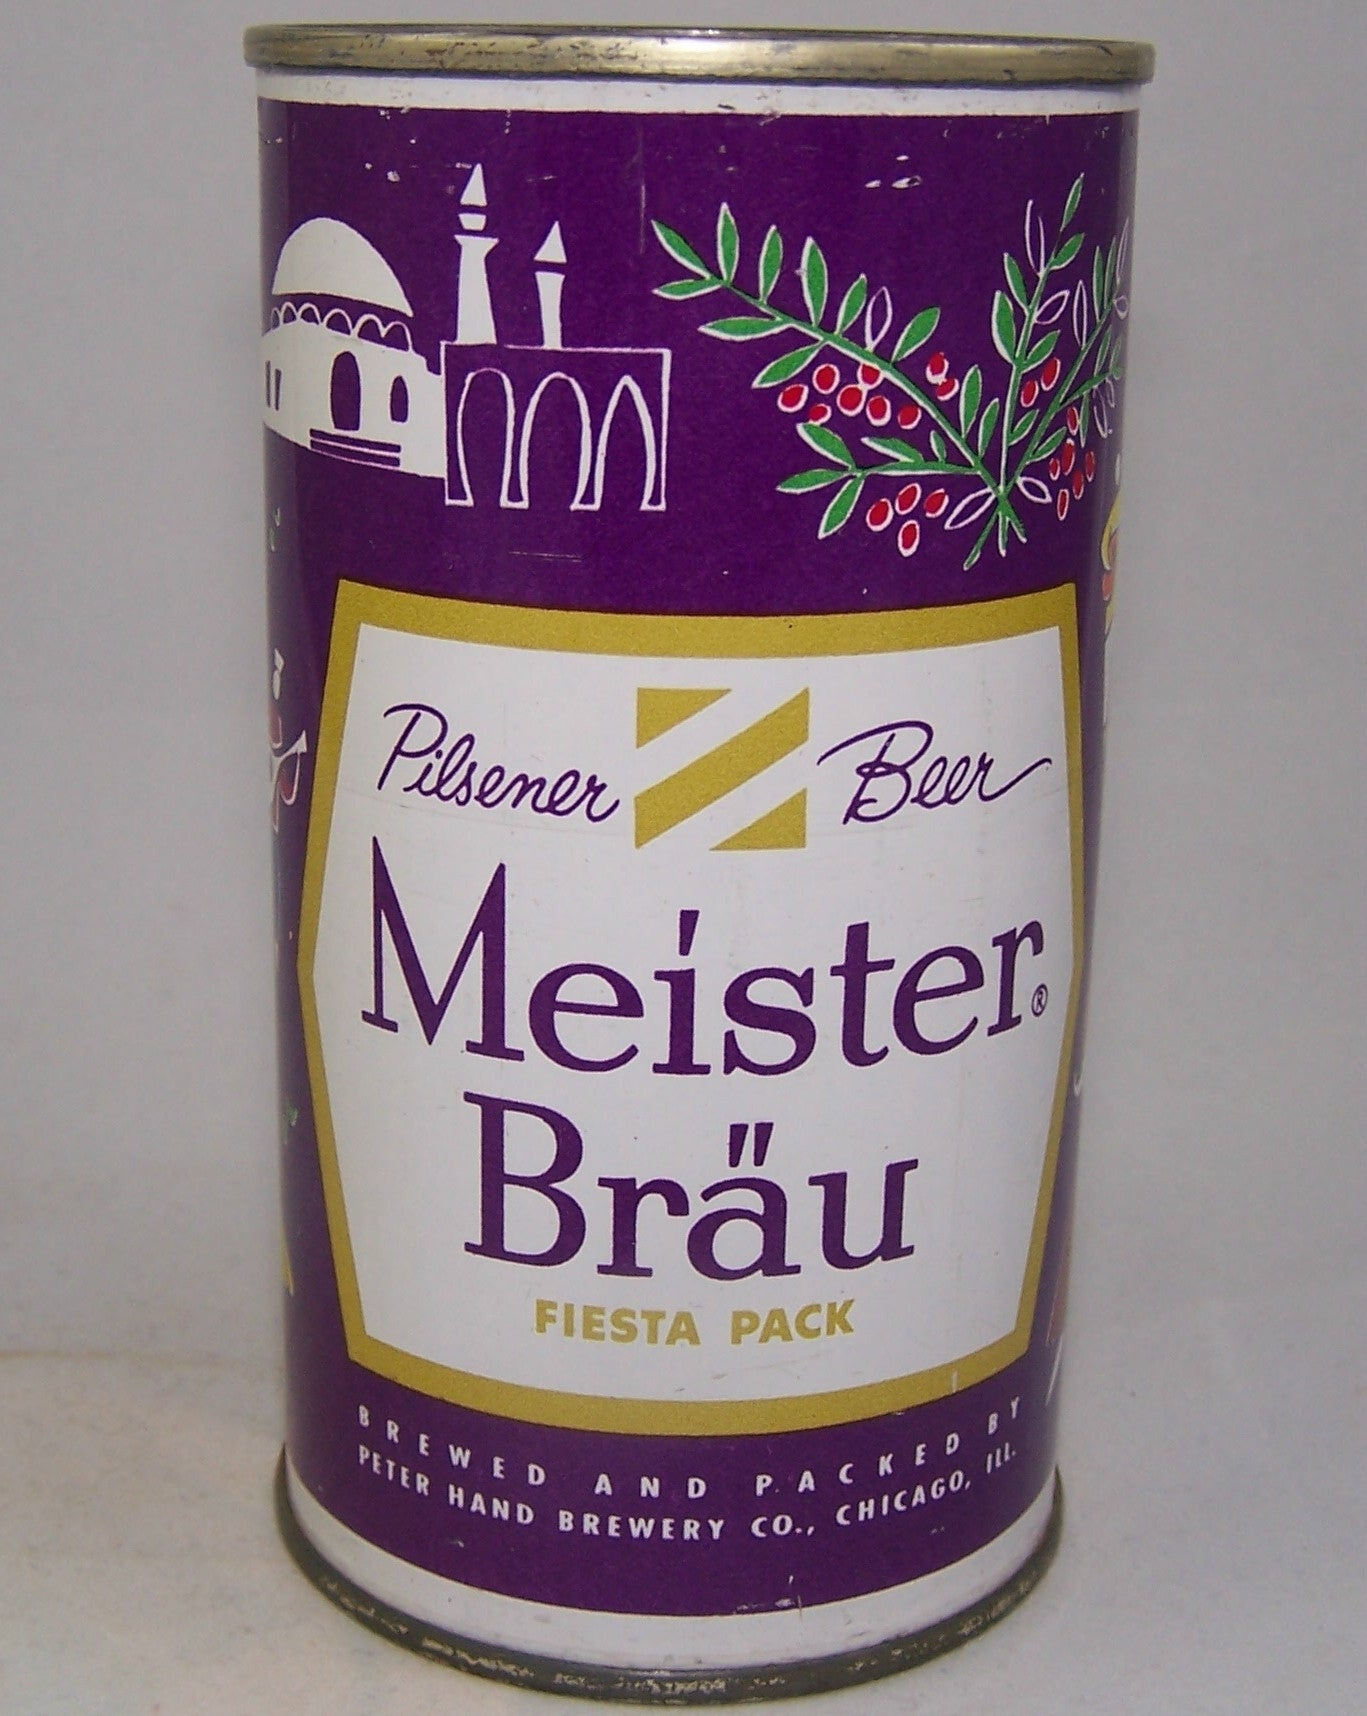 Meister Brau Beer, Country Can, (Turkey) USBC 97-24, Grade 1/1+ Sold on 10/24/15